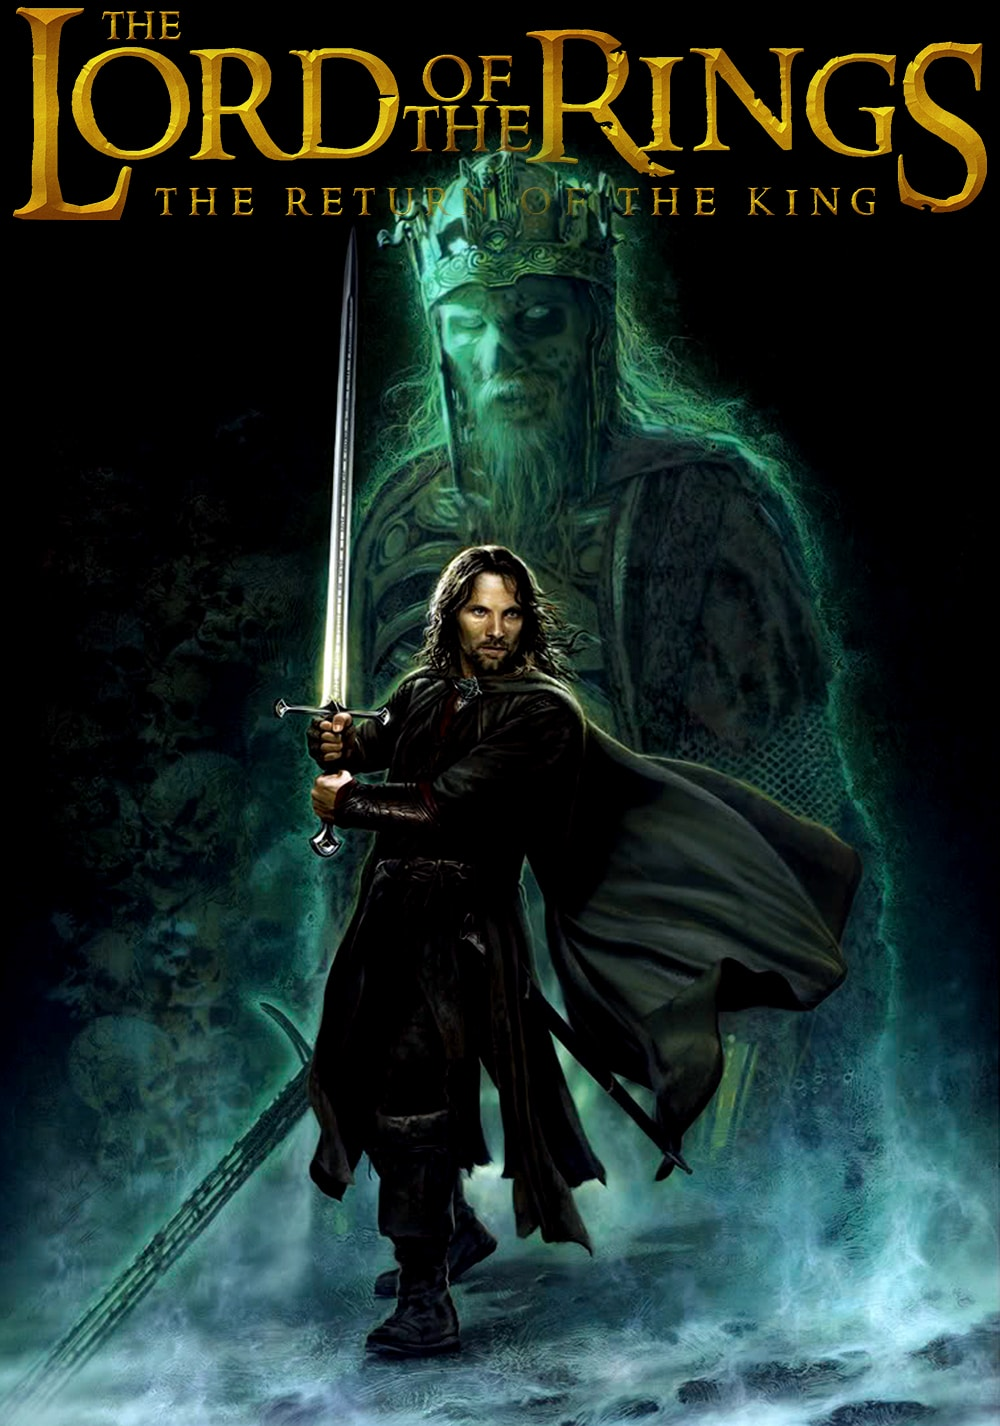 the lord of the rings poster part 3 2003 the return of the king high quality HD printable wallpapers ghost pirate the army of dead